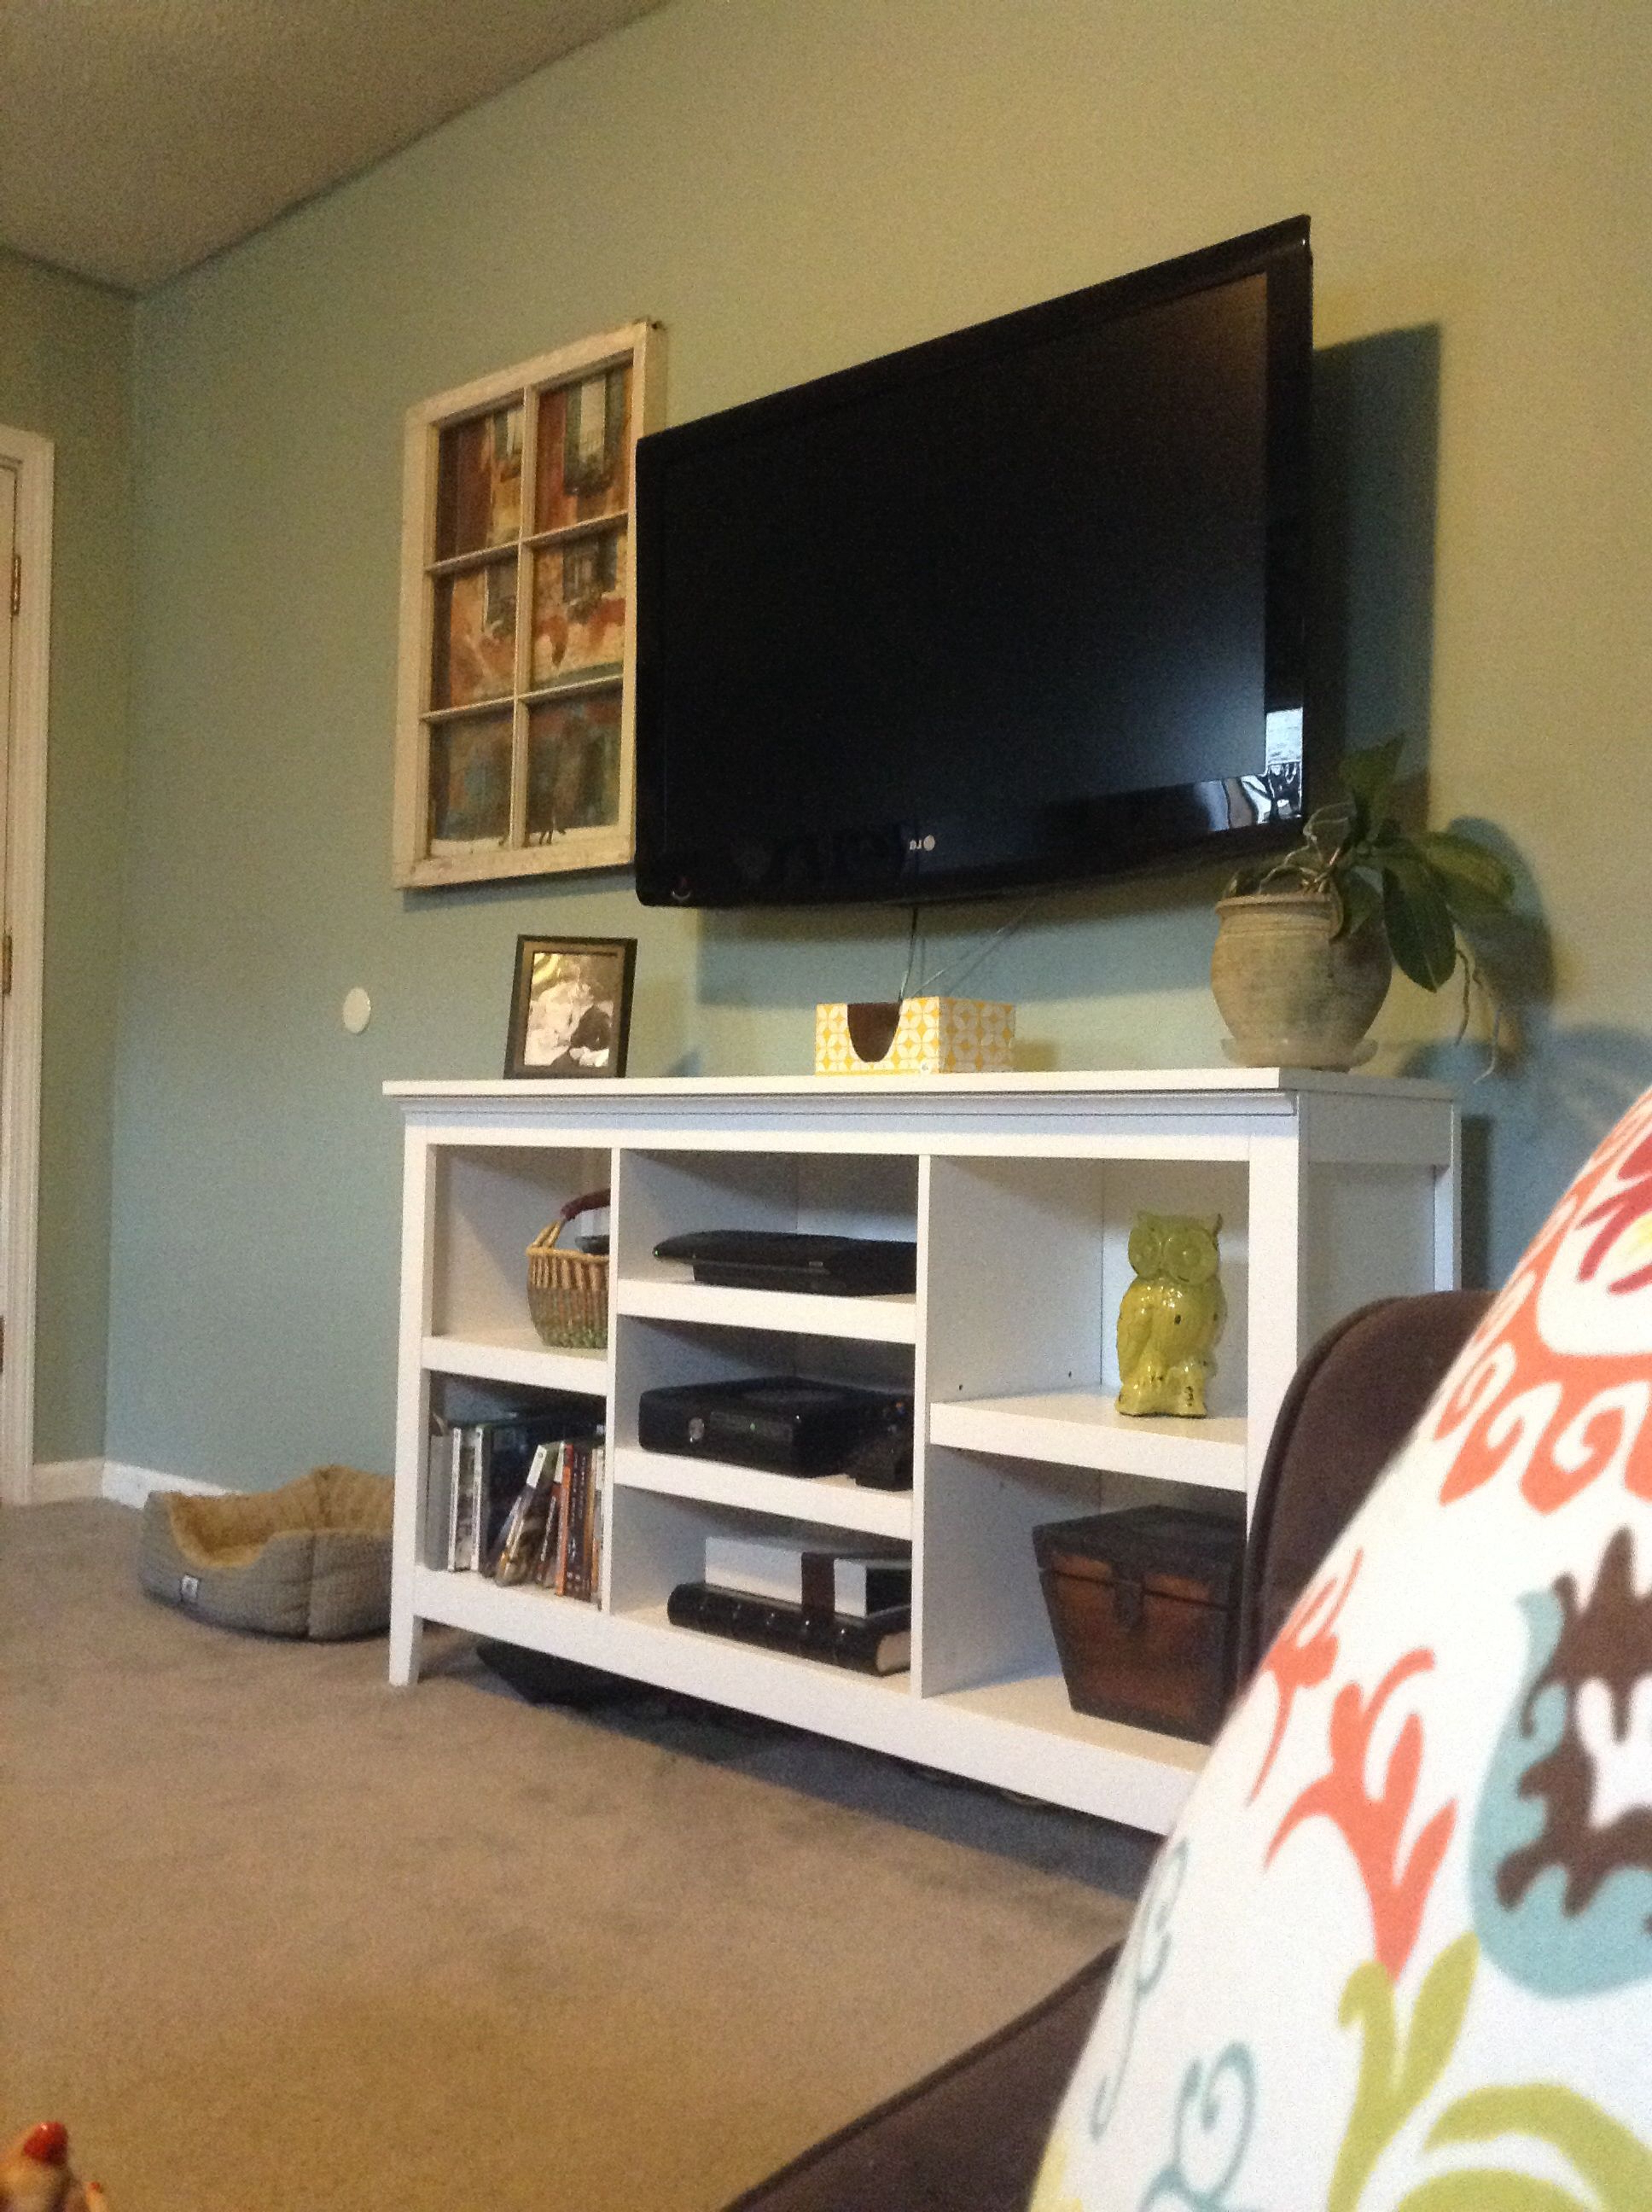 Threshold Bookcase From Target. New Tv Stand Wall (View 11 of 20)